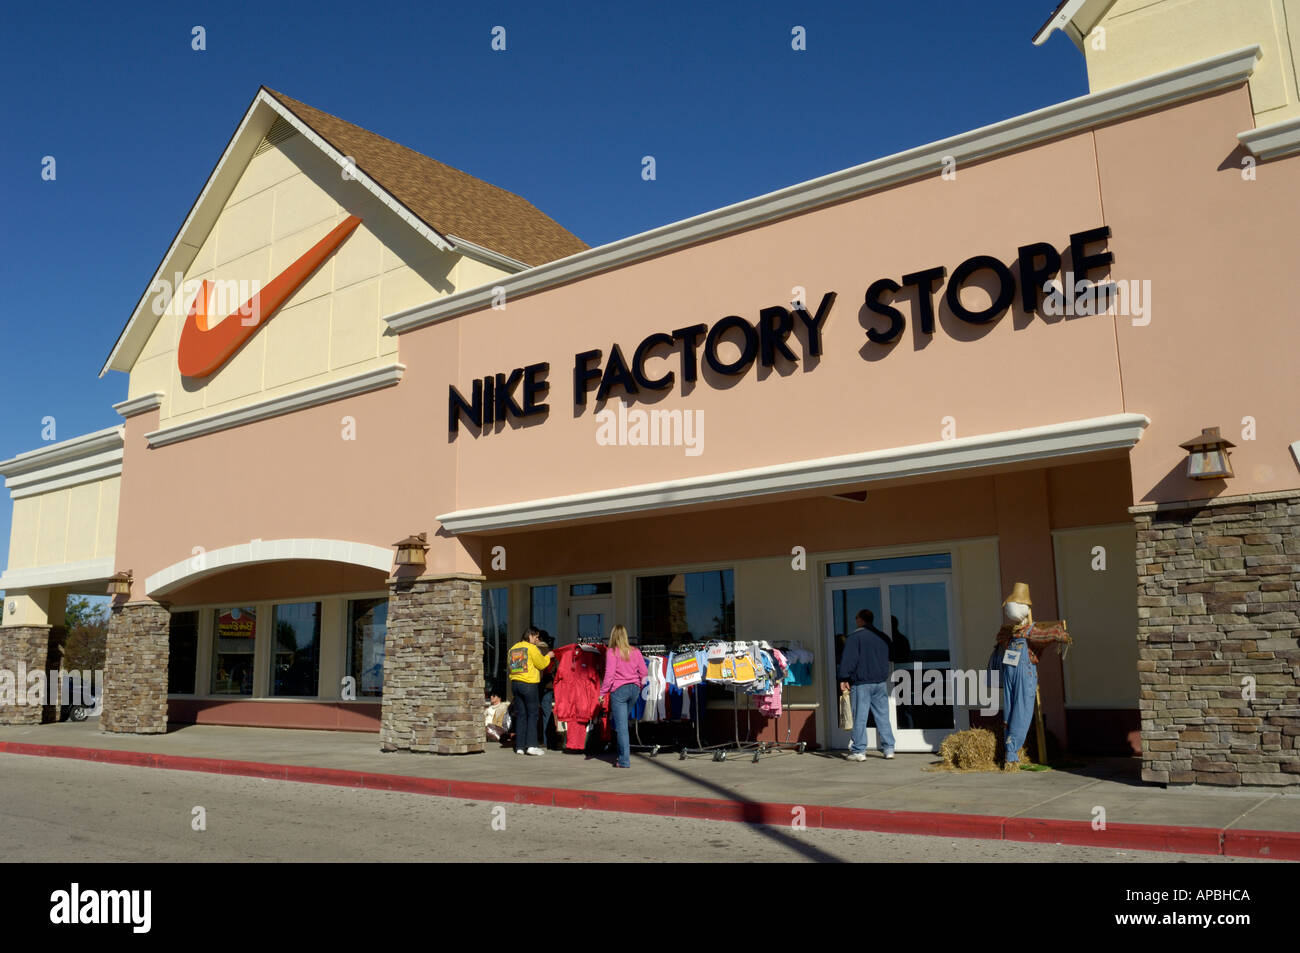 1c9409a06db Nike factory outlet store in Birch Run Michigan Stock Photo: 5137865 ...